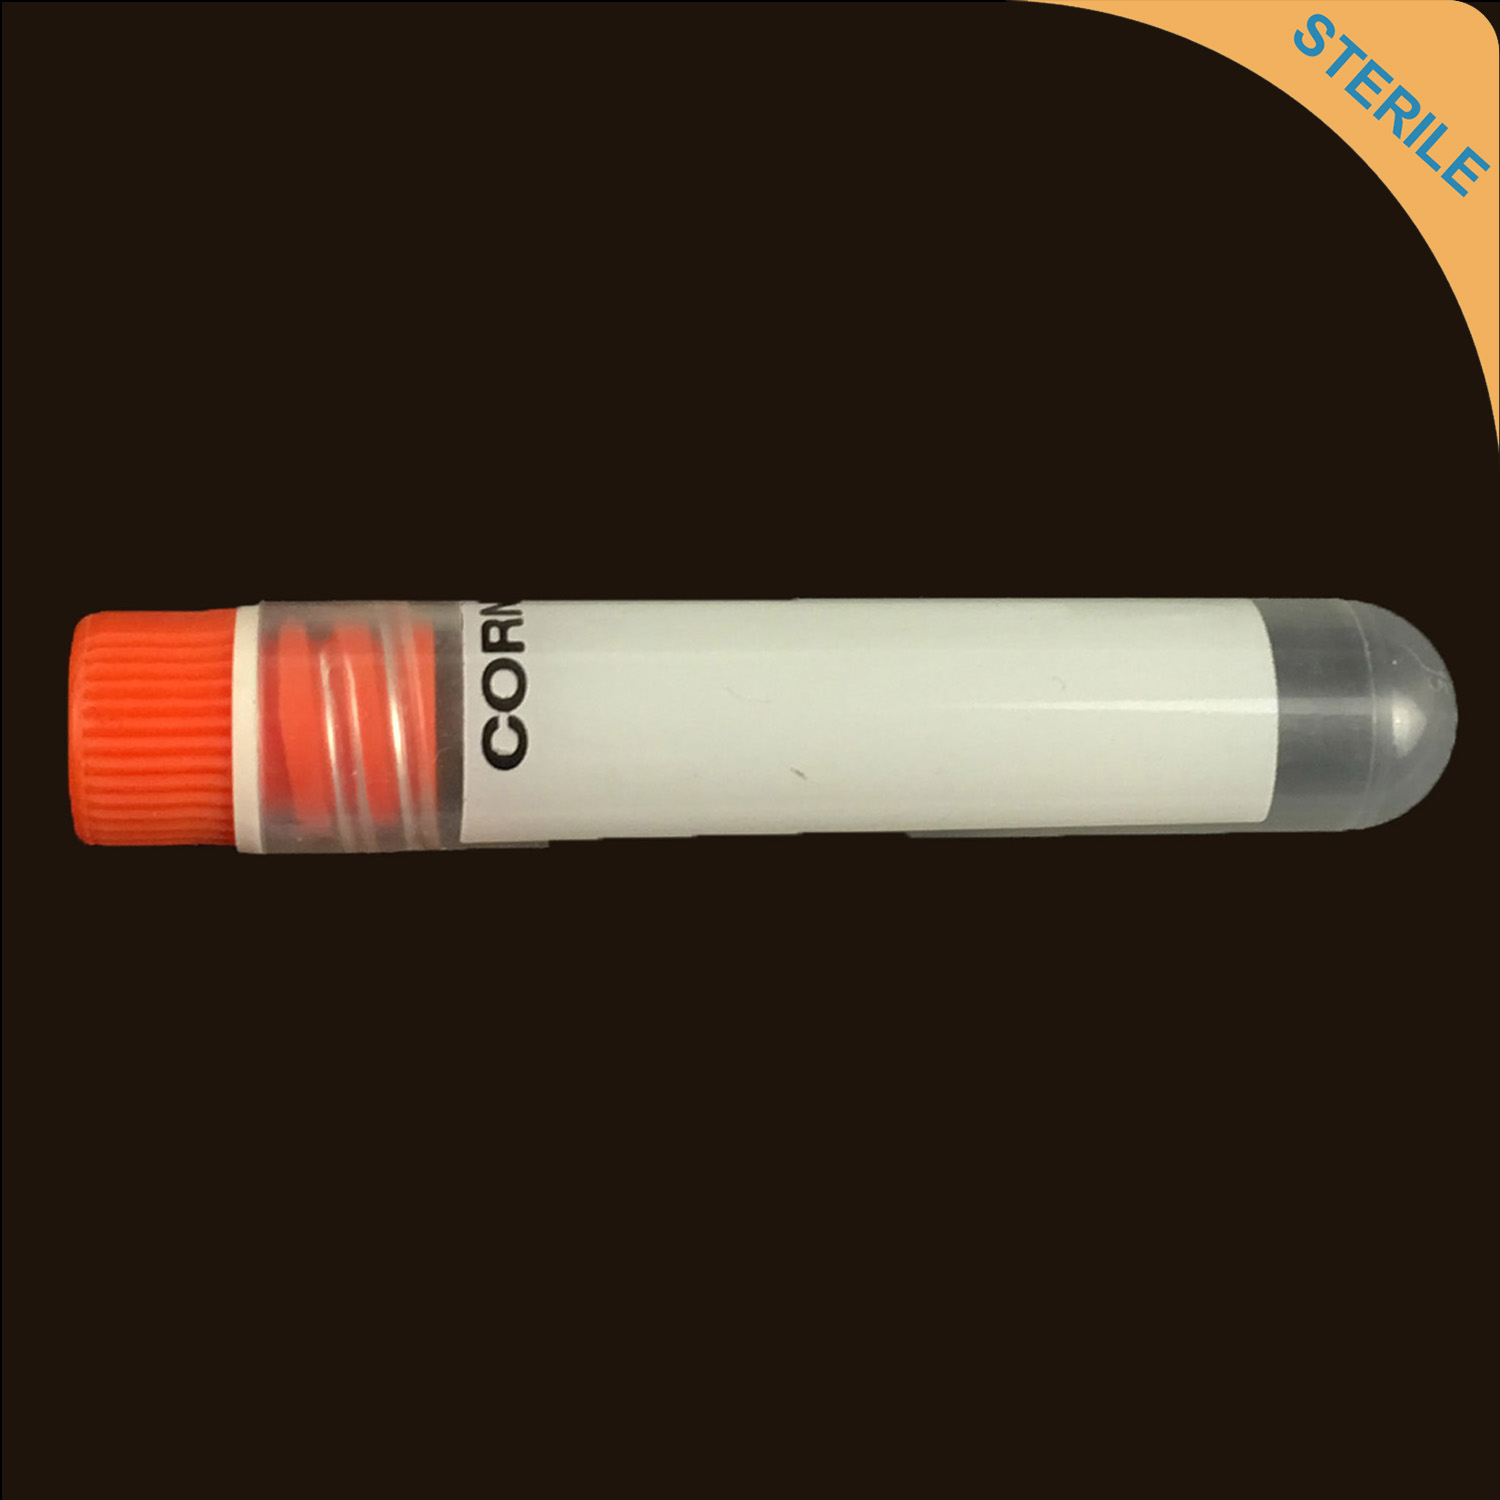 4ml Corning round bottom cryovial